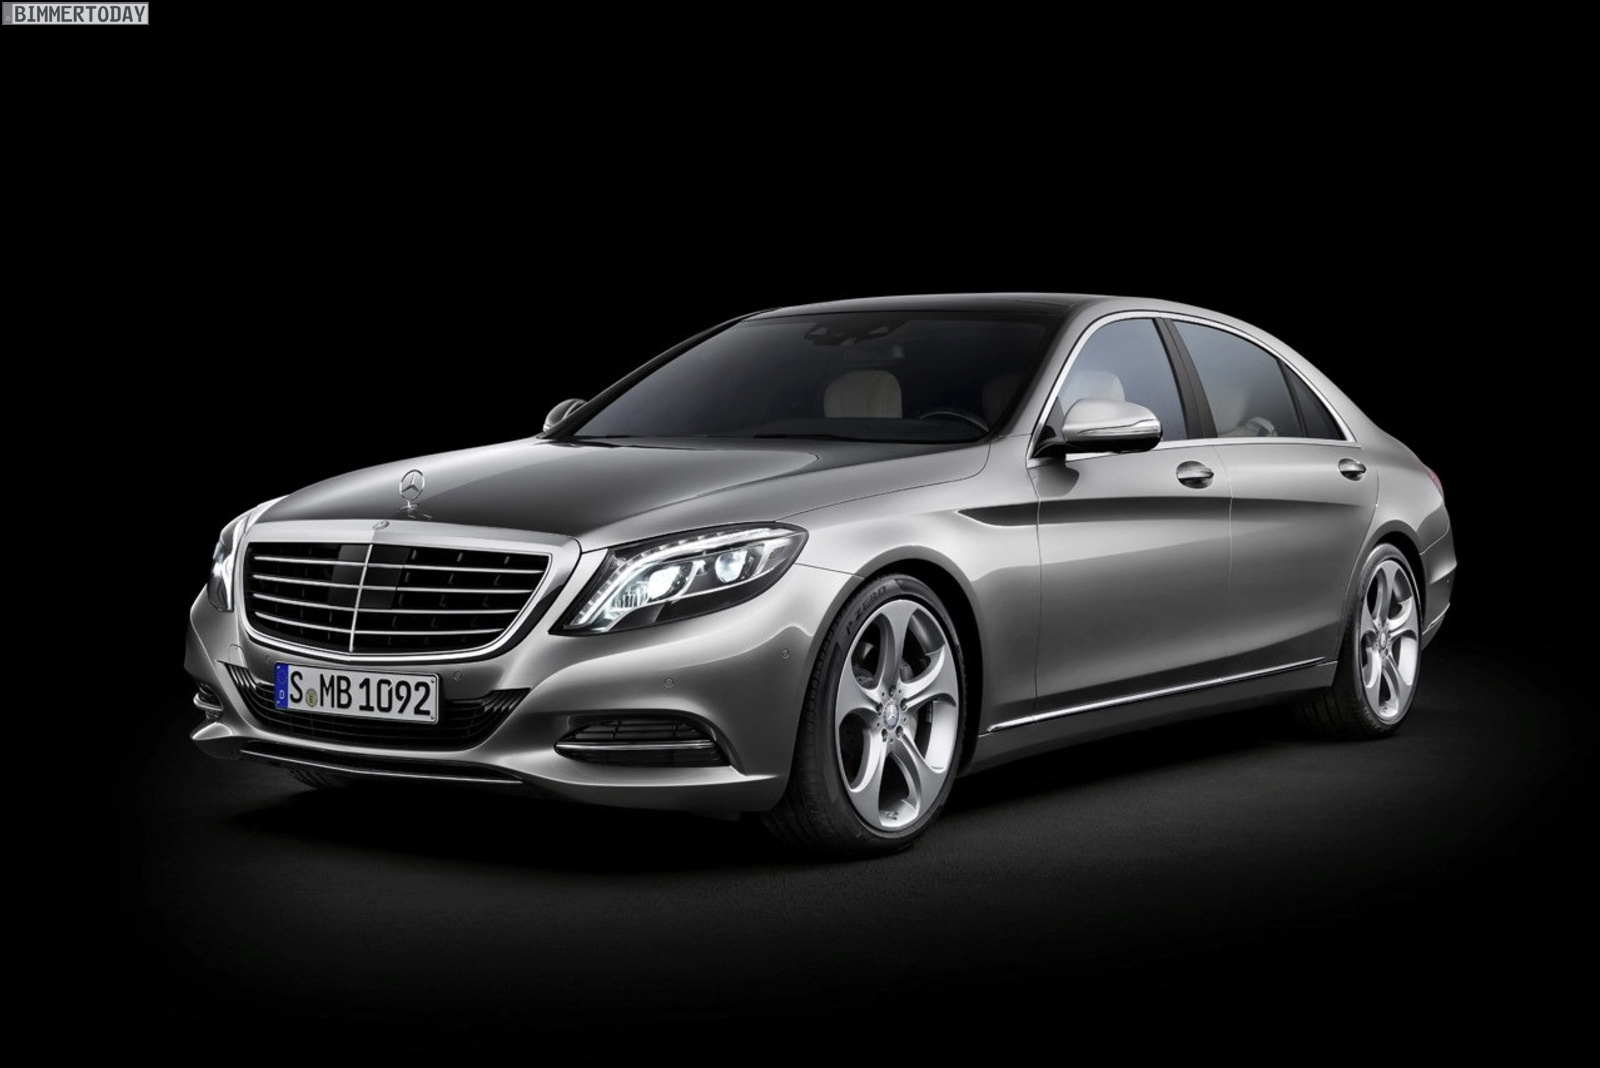 Mercedes-benz sedan photo - 2